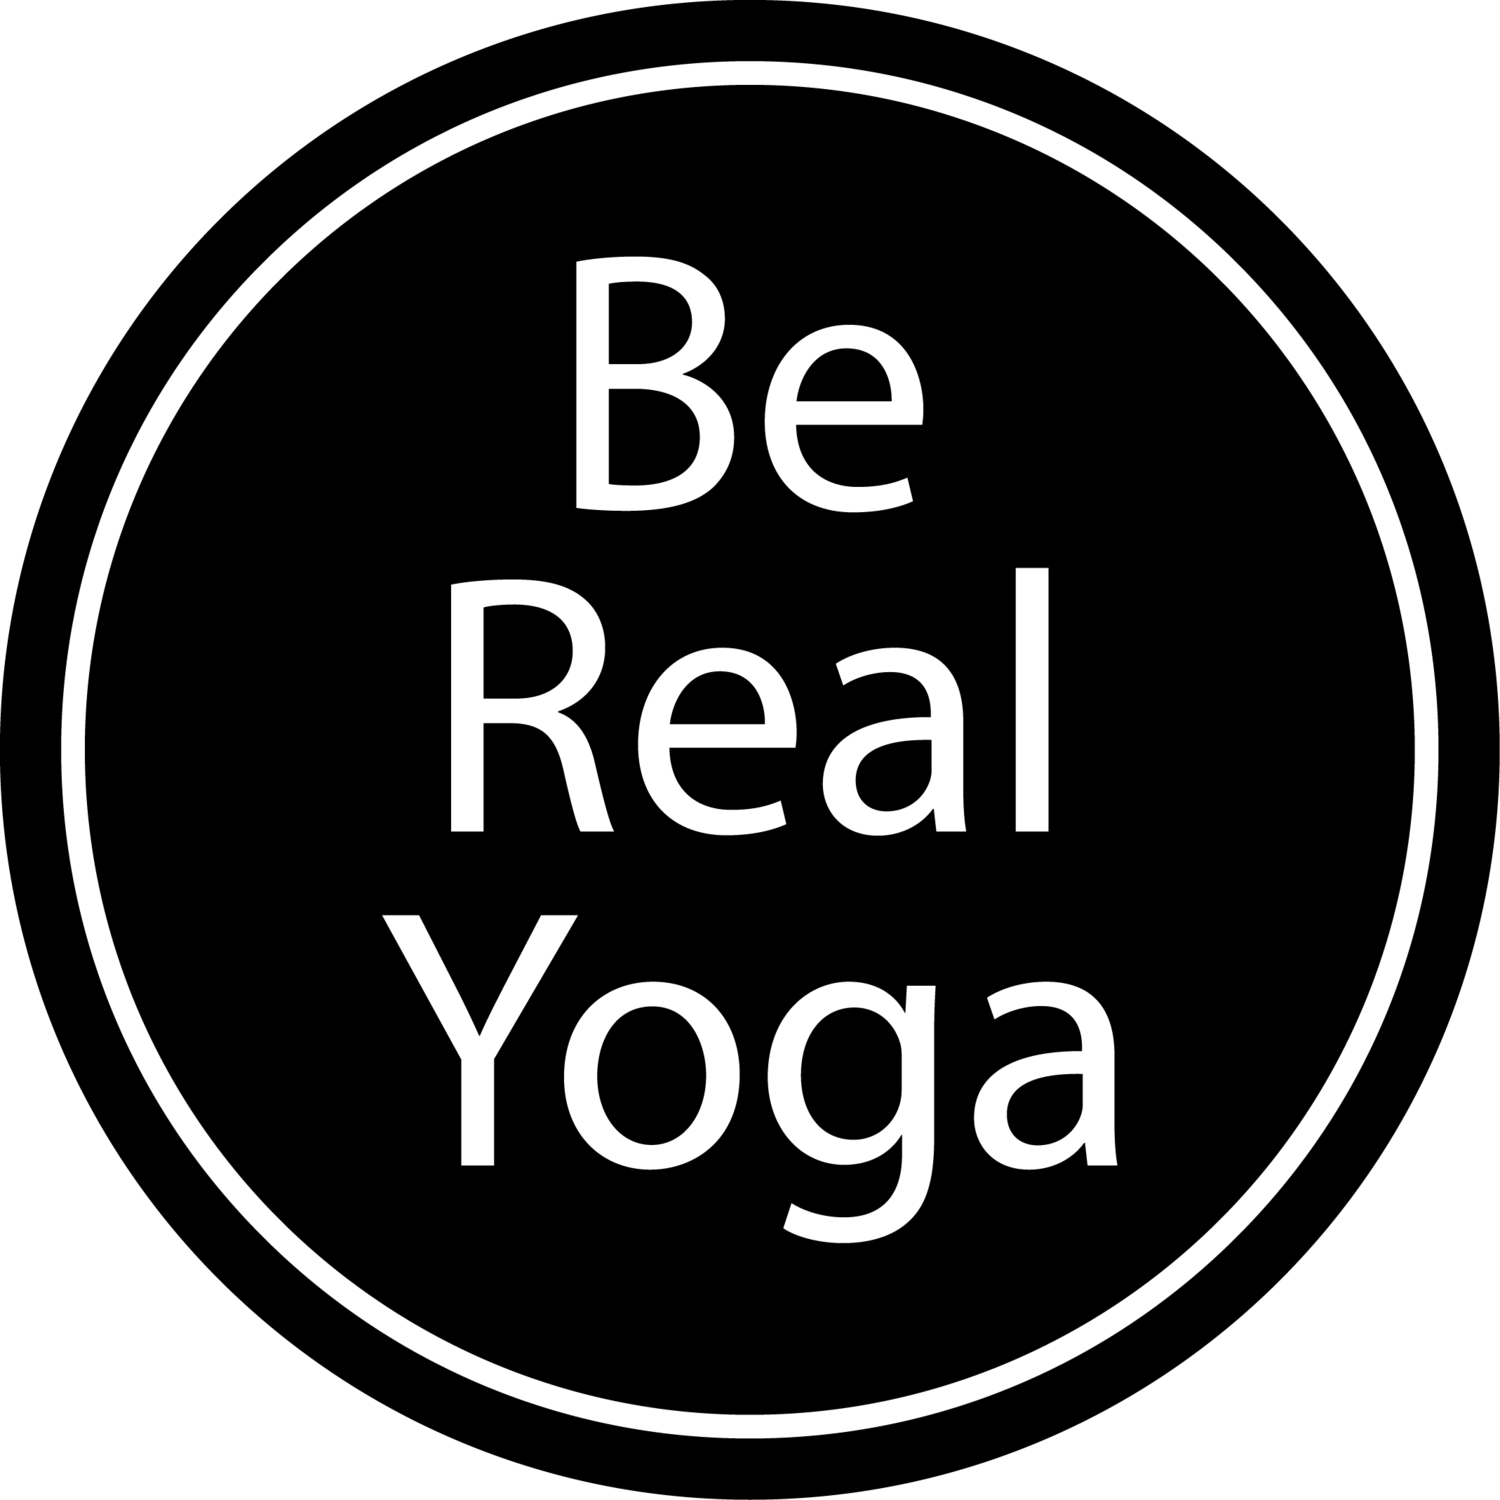 Be Real Yoga